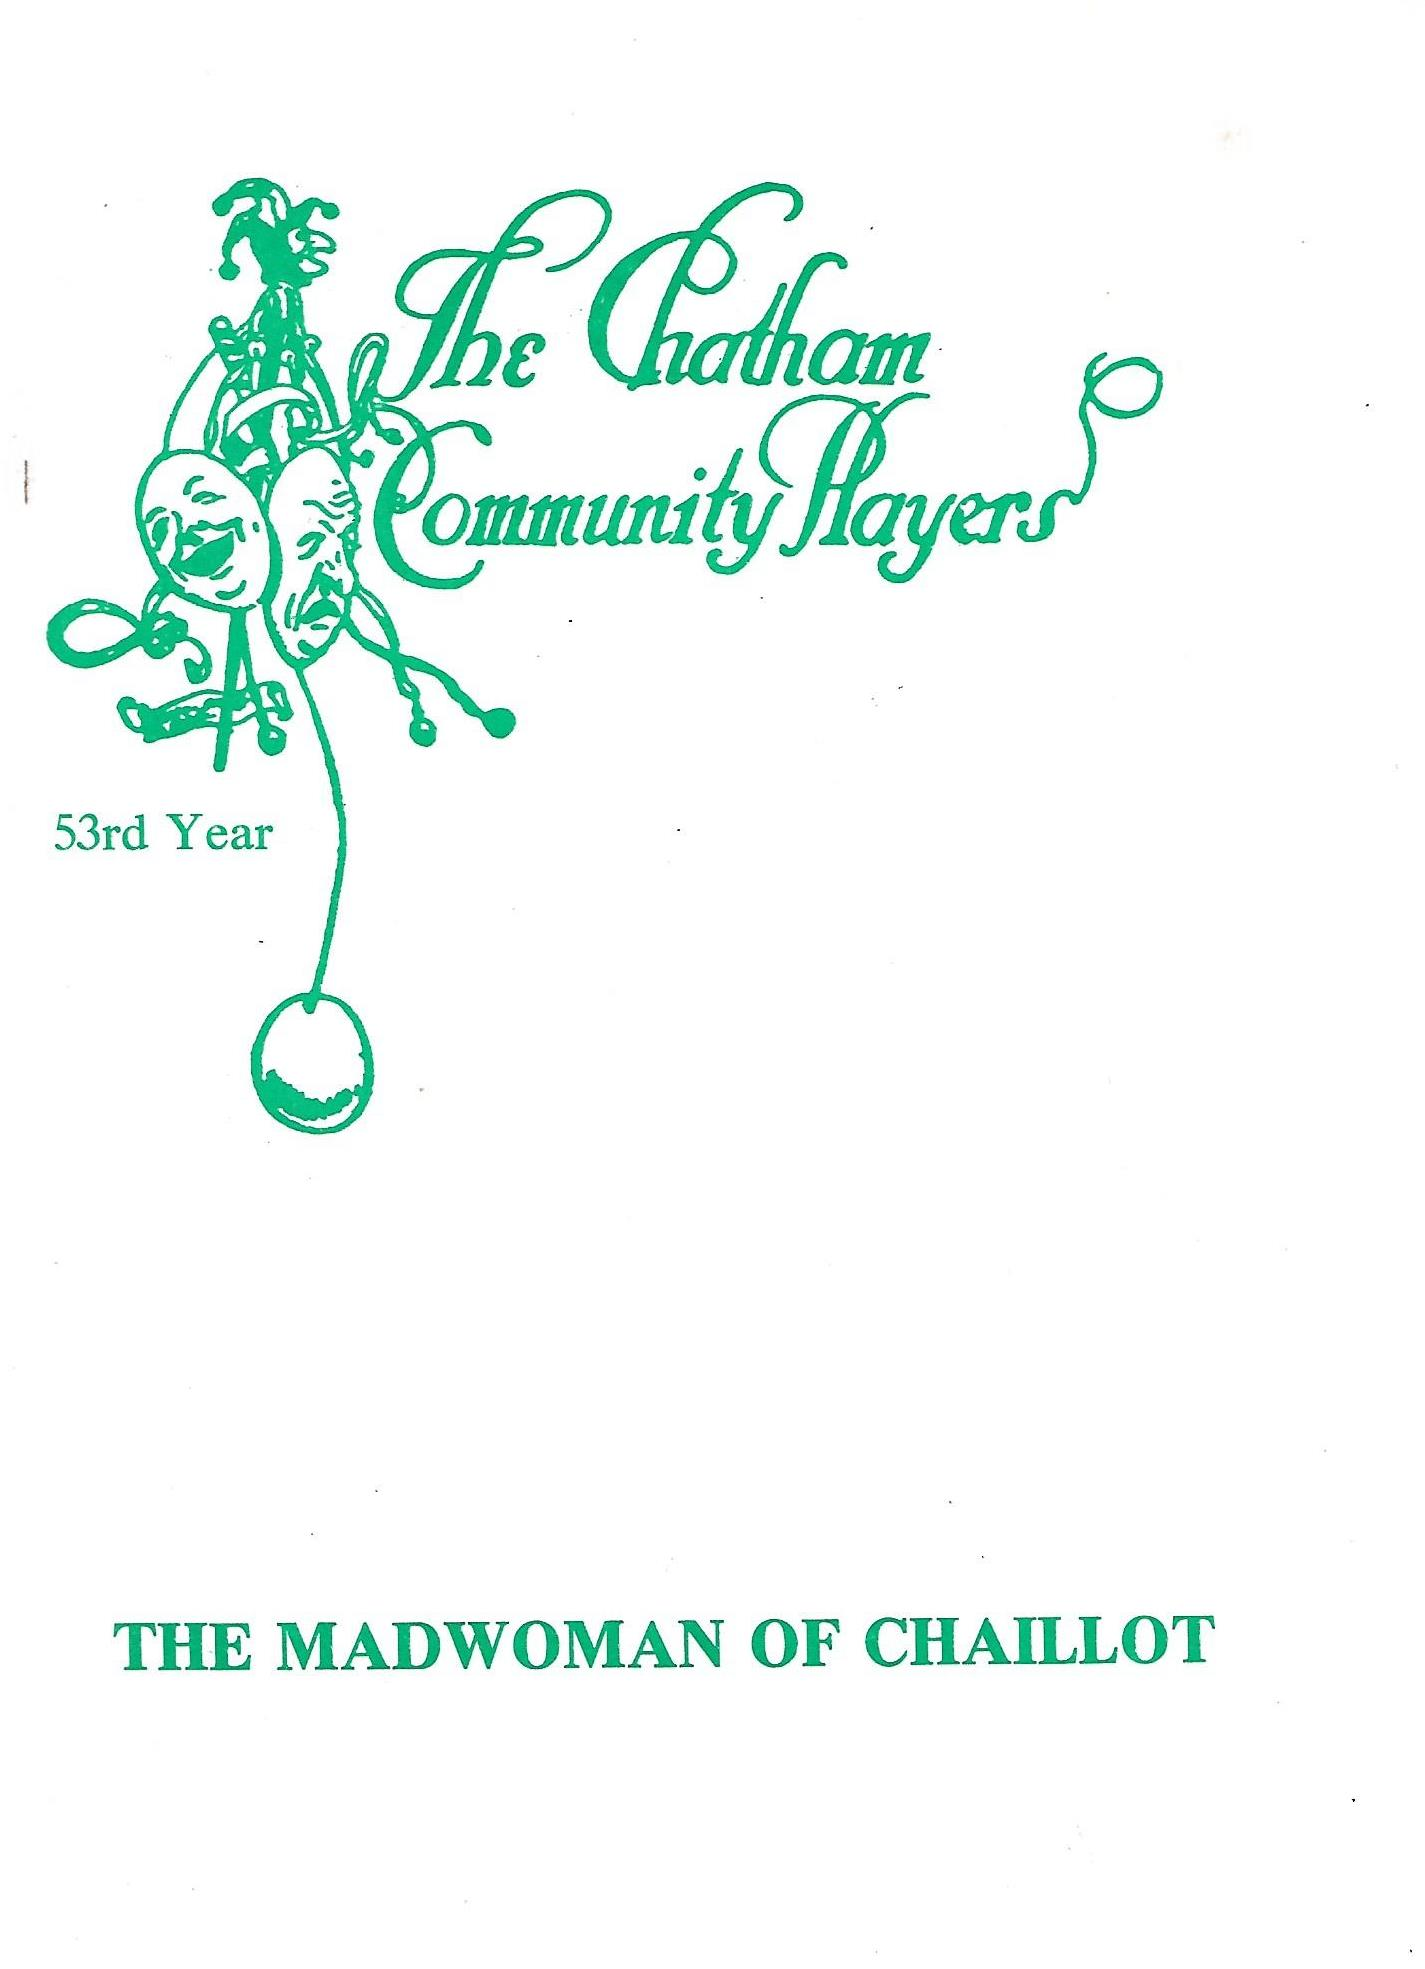 The Madwoman of Chaillot (1975)